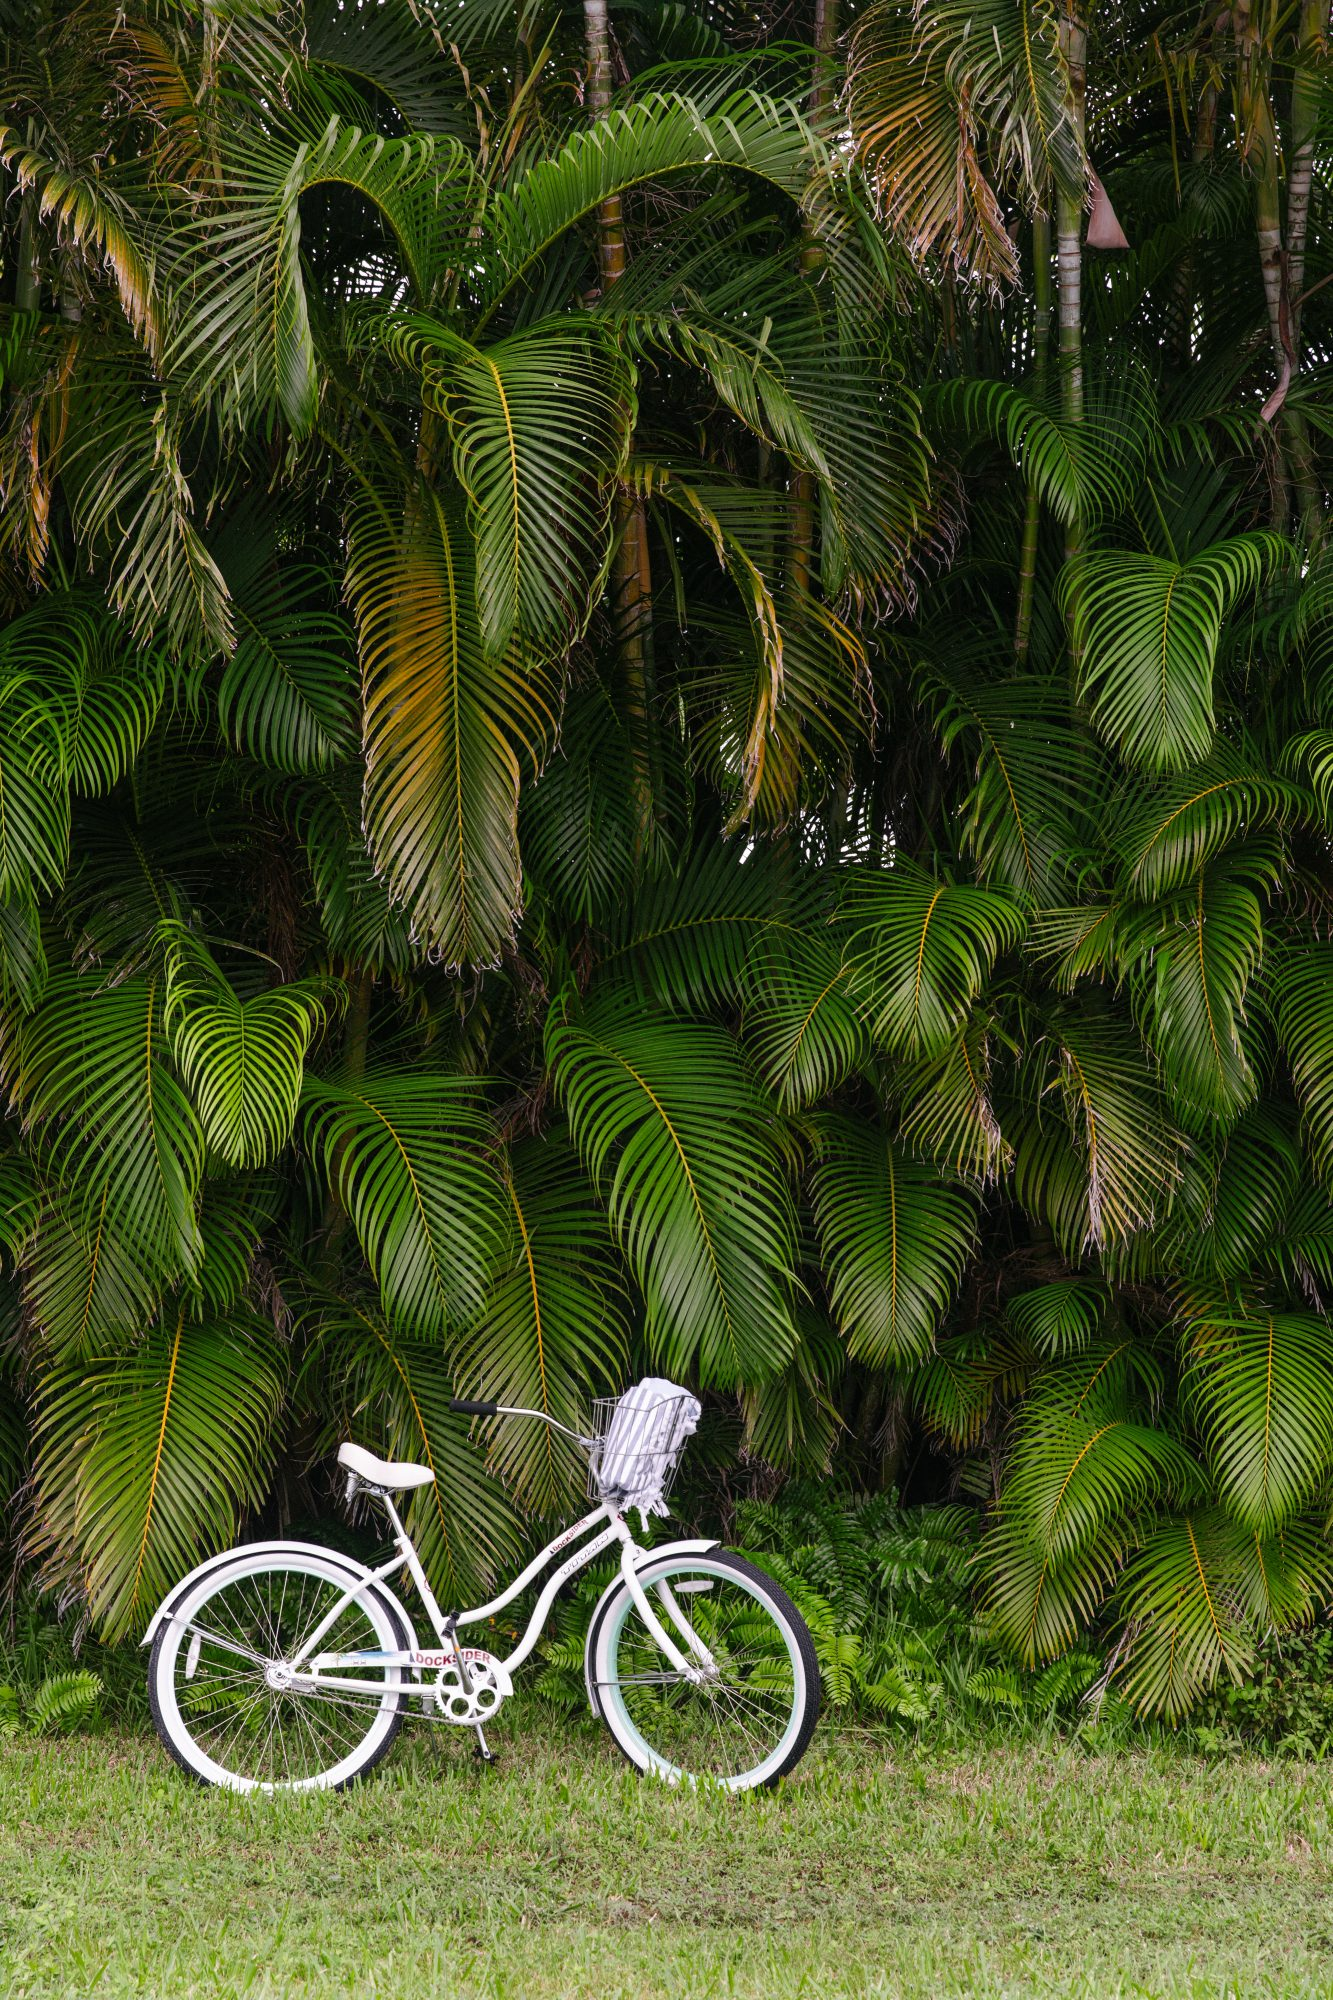 Bike in front of Trees in Anna Maria, FL